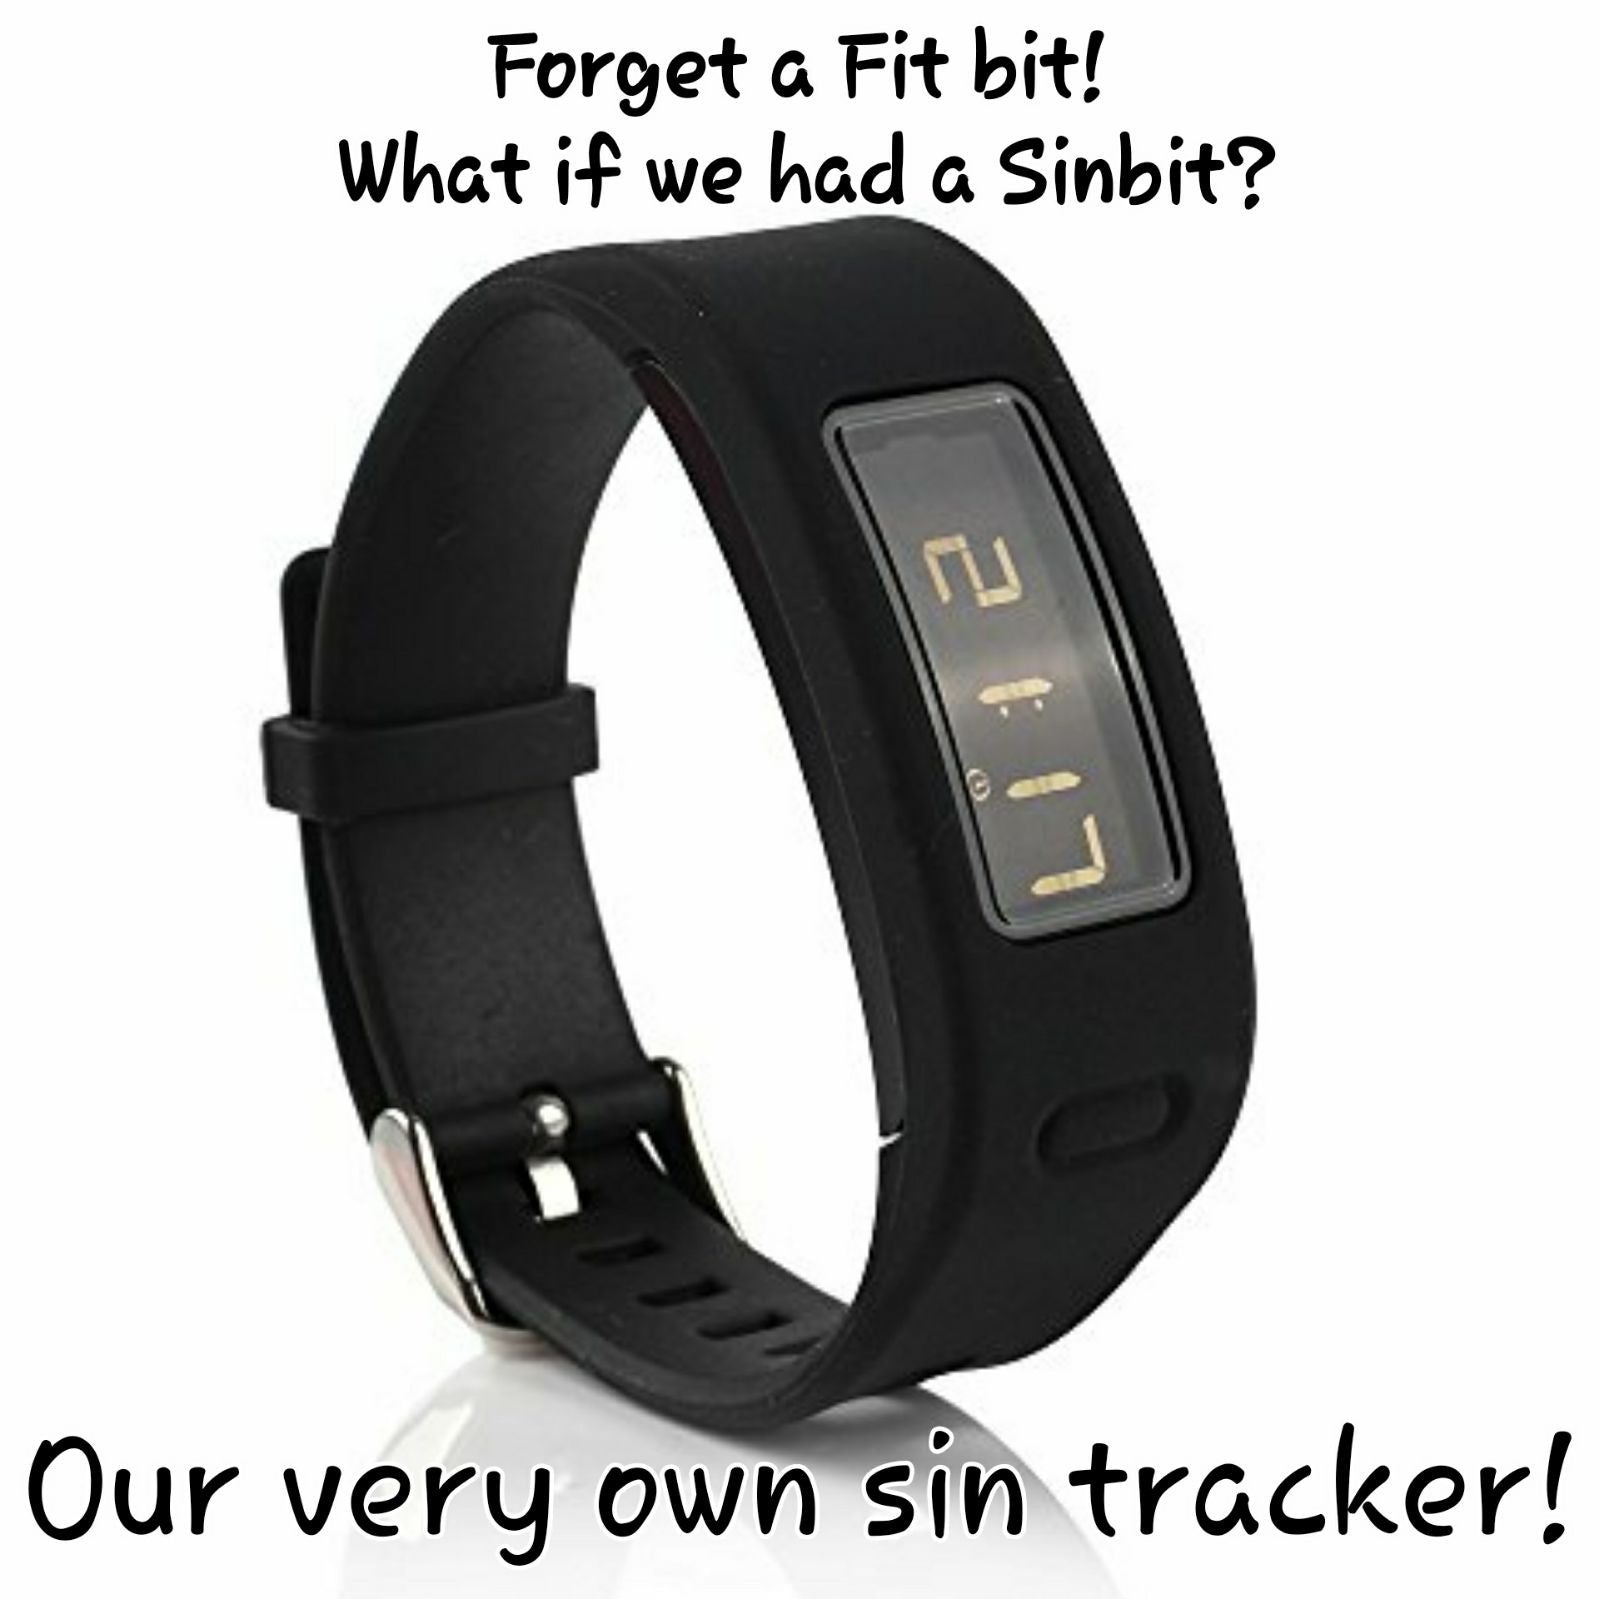 Forget a Fitbit! What if we had a Sinbit?